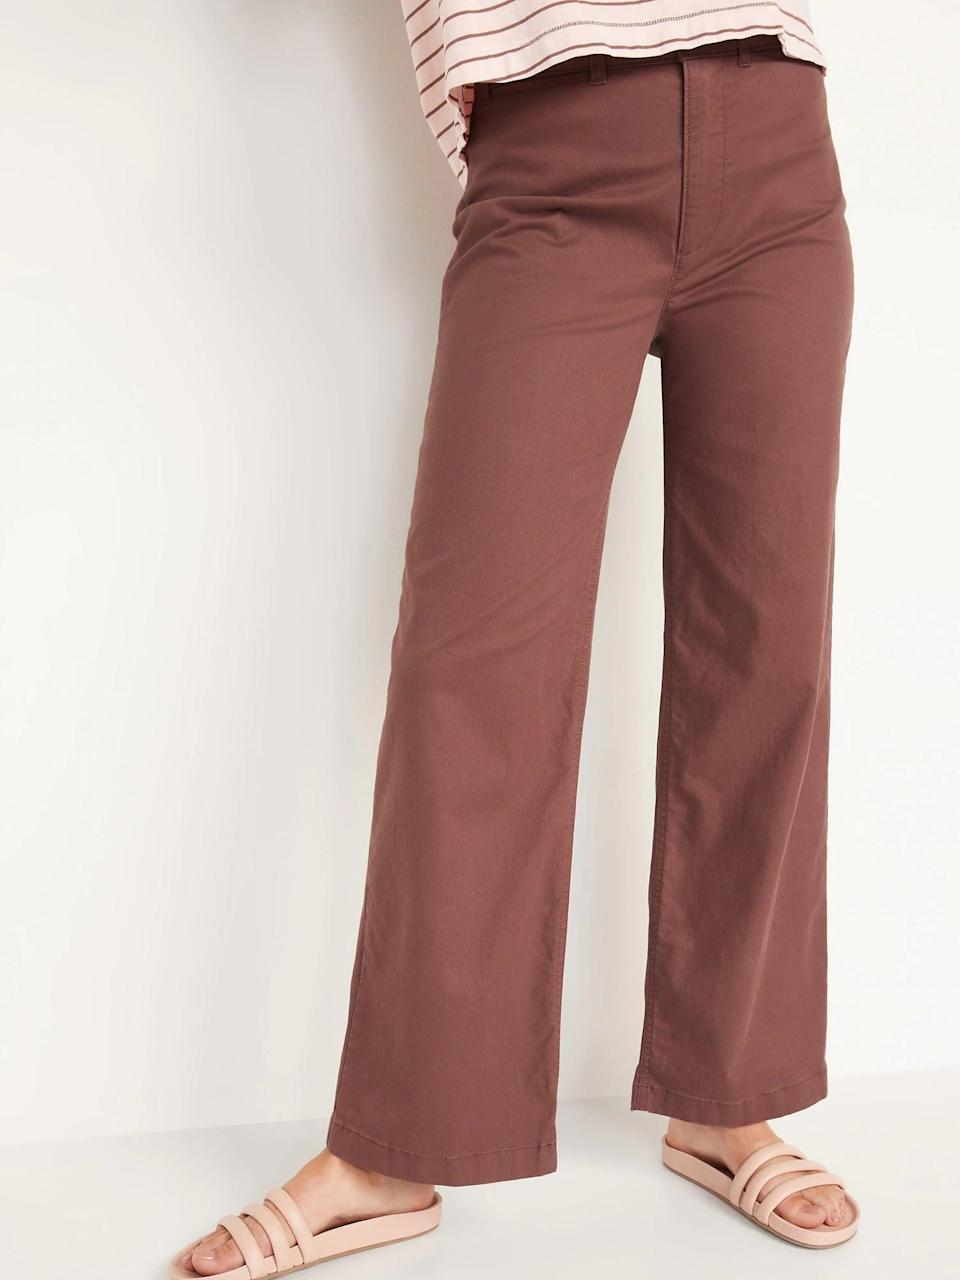 """<p>Match these long <span>Old Navy Extra High-Waisted Wide-Leg Pants</span> ($33, originally $35) with sandals on a warm fall day and your <a href=""""https://www.popsugar.com/fashion/Best-White-Sneakers-Women-46178959"""" class=""""link rapid-noclick-resp"""" rel=""""nofollow noopener"""" target=""""_blank"""" data-ylk=""""slk:favorite white sneakers"""">favorite white sneakers</a> when it gets colder instead.</p>"""